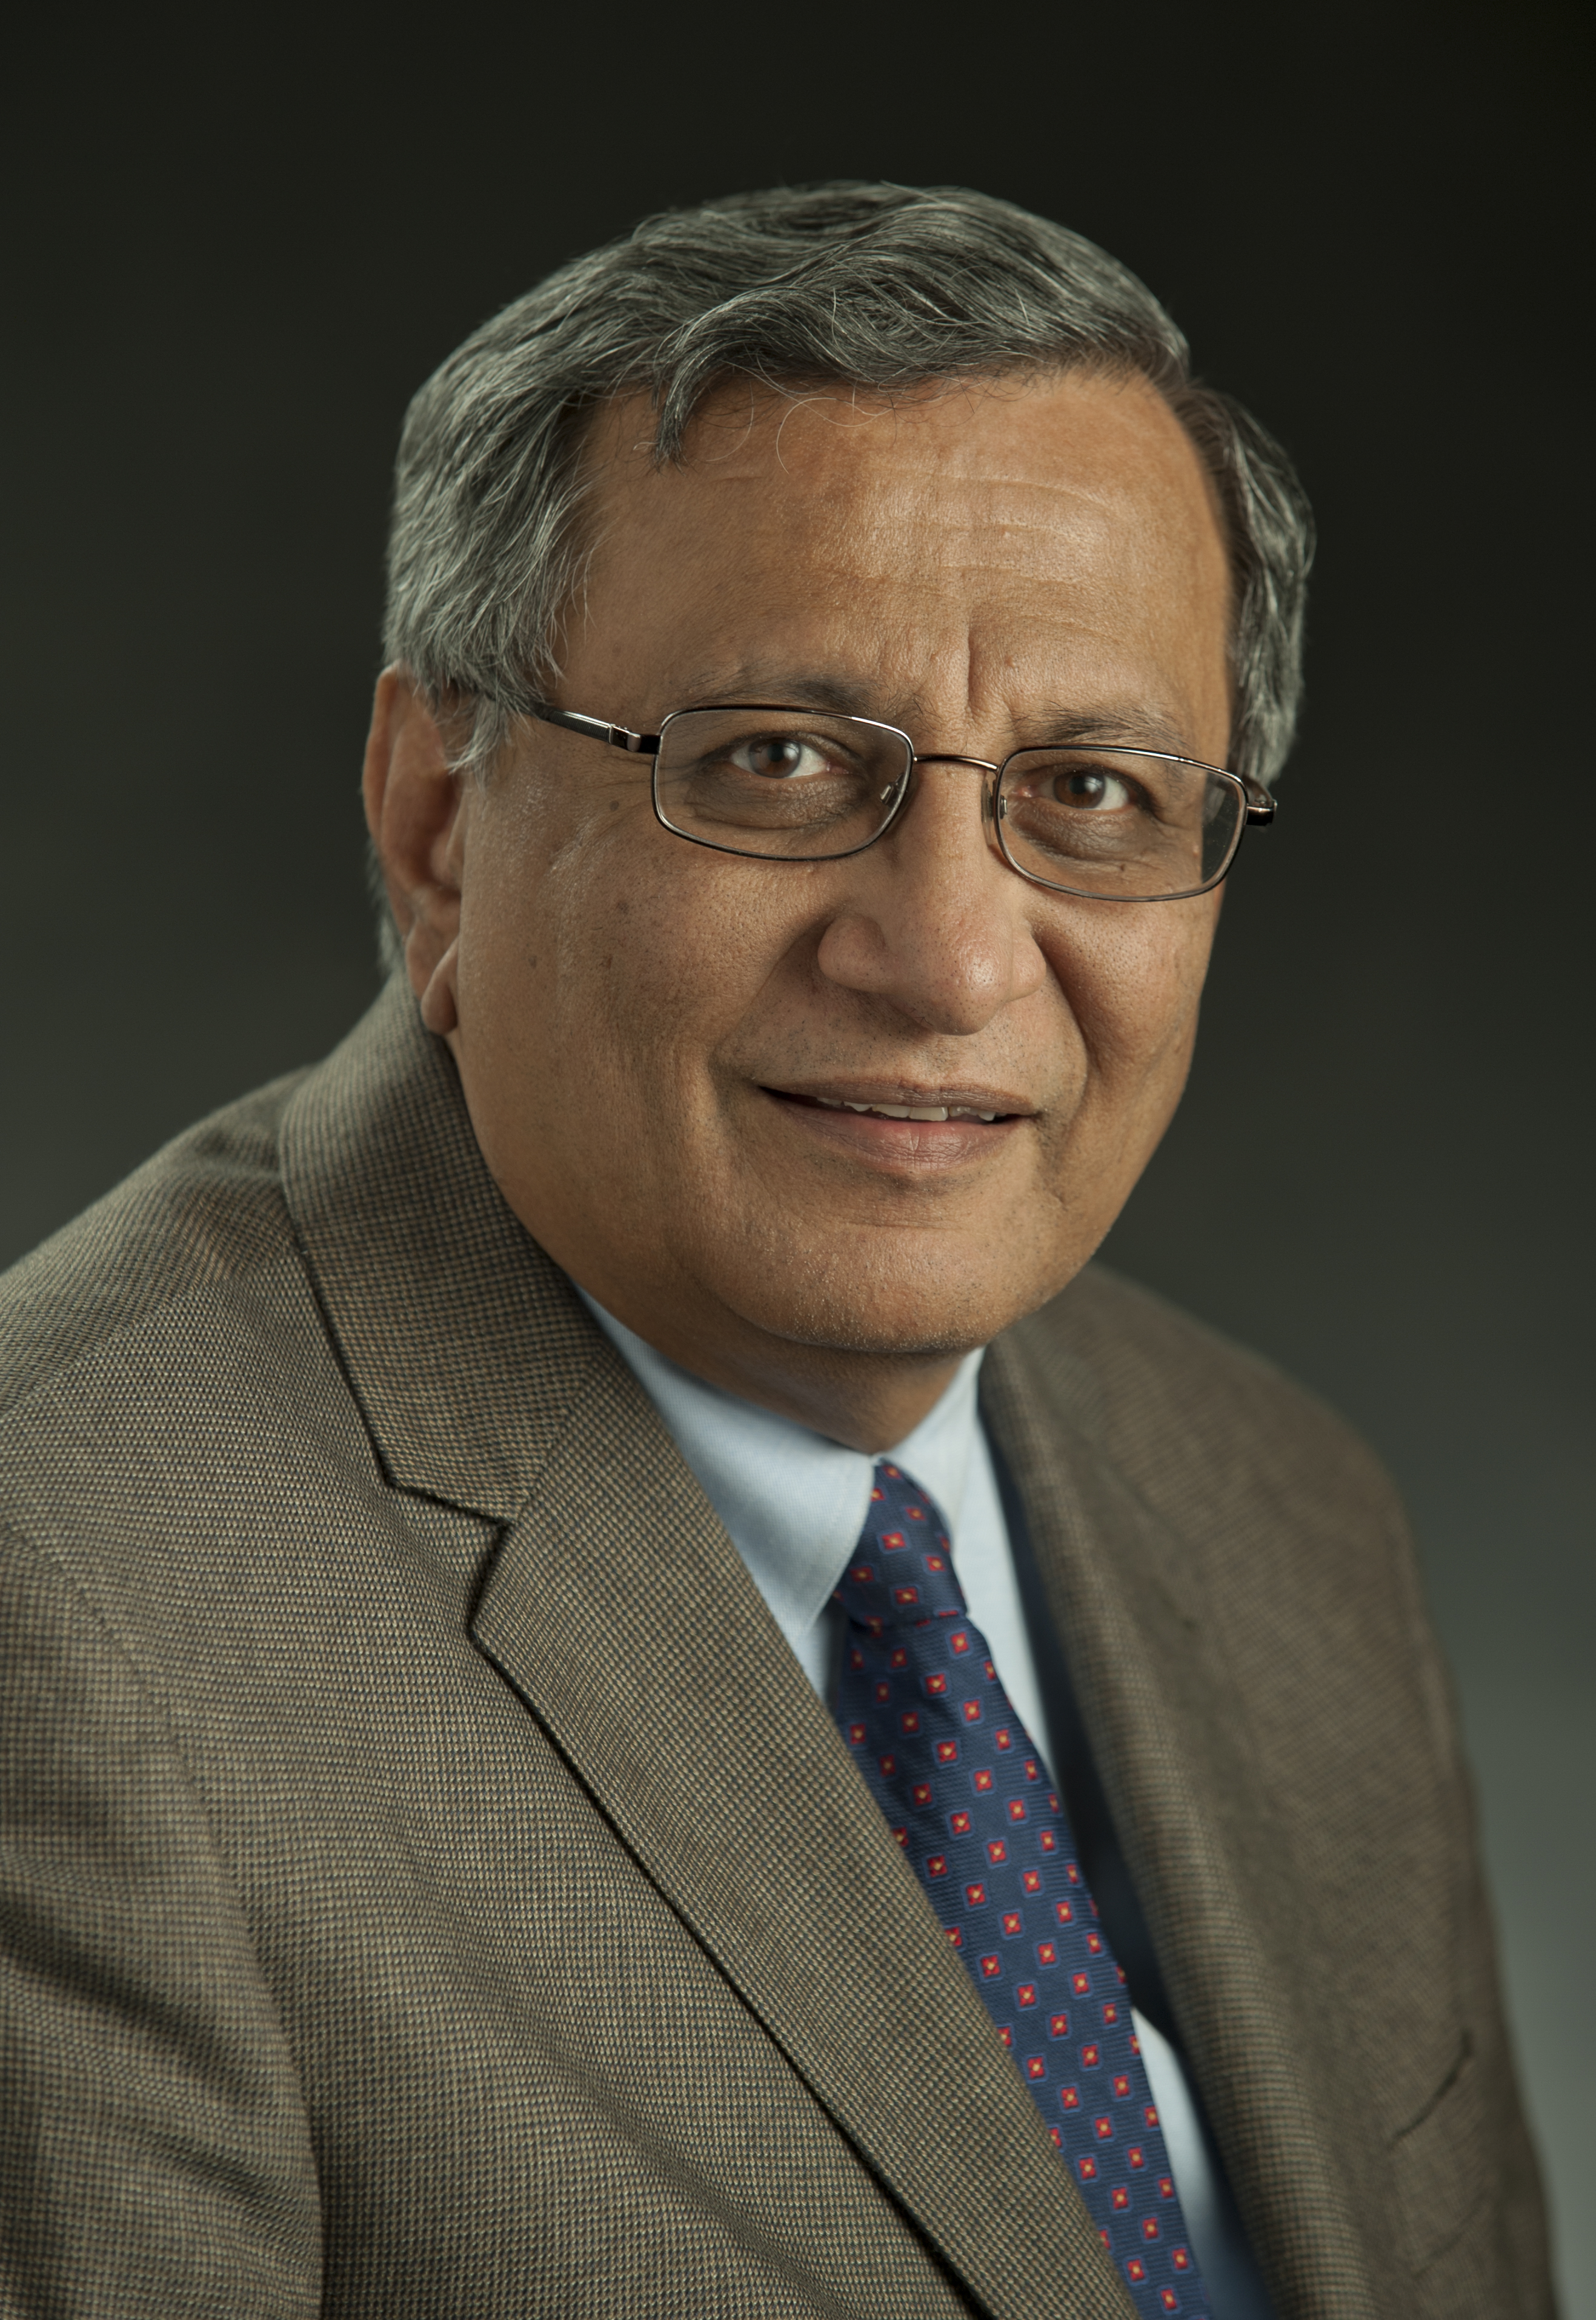 University Distinguished Professor Satish Udpa is the interim director of MSU Mobility.